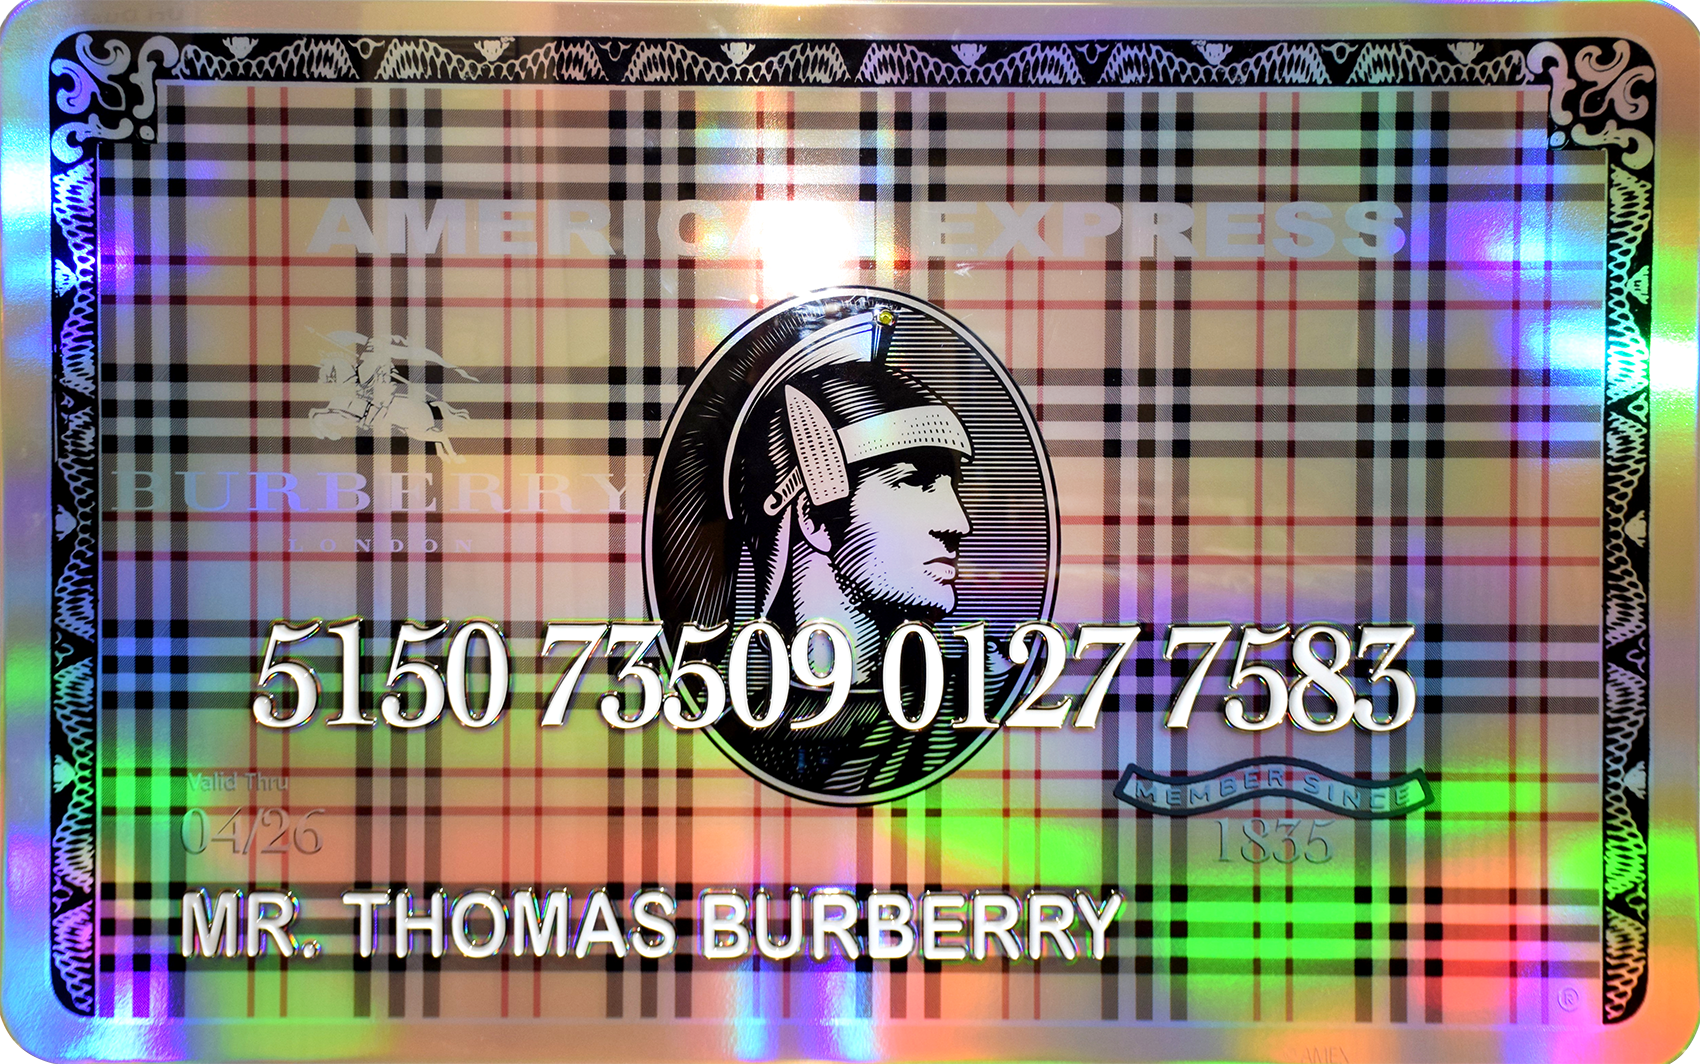 Diederik - AMEX (Mr. Thomas Burberry) , 4504-016-282